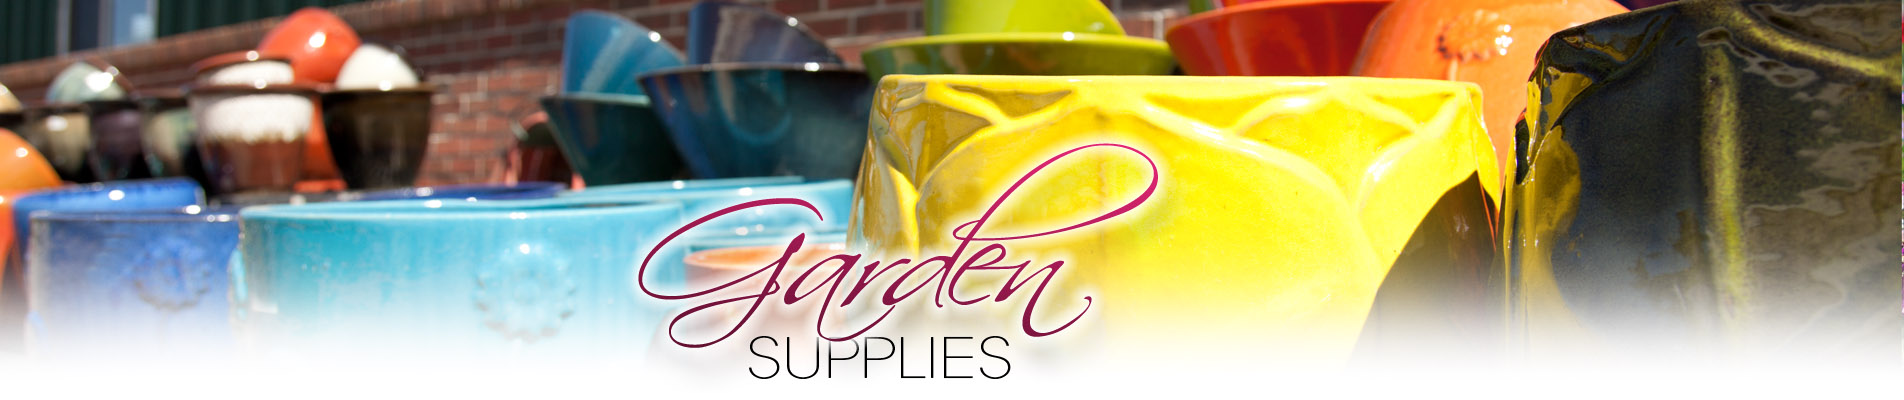 Garden Supplies at Homestead Garden Center